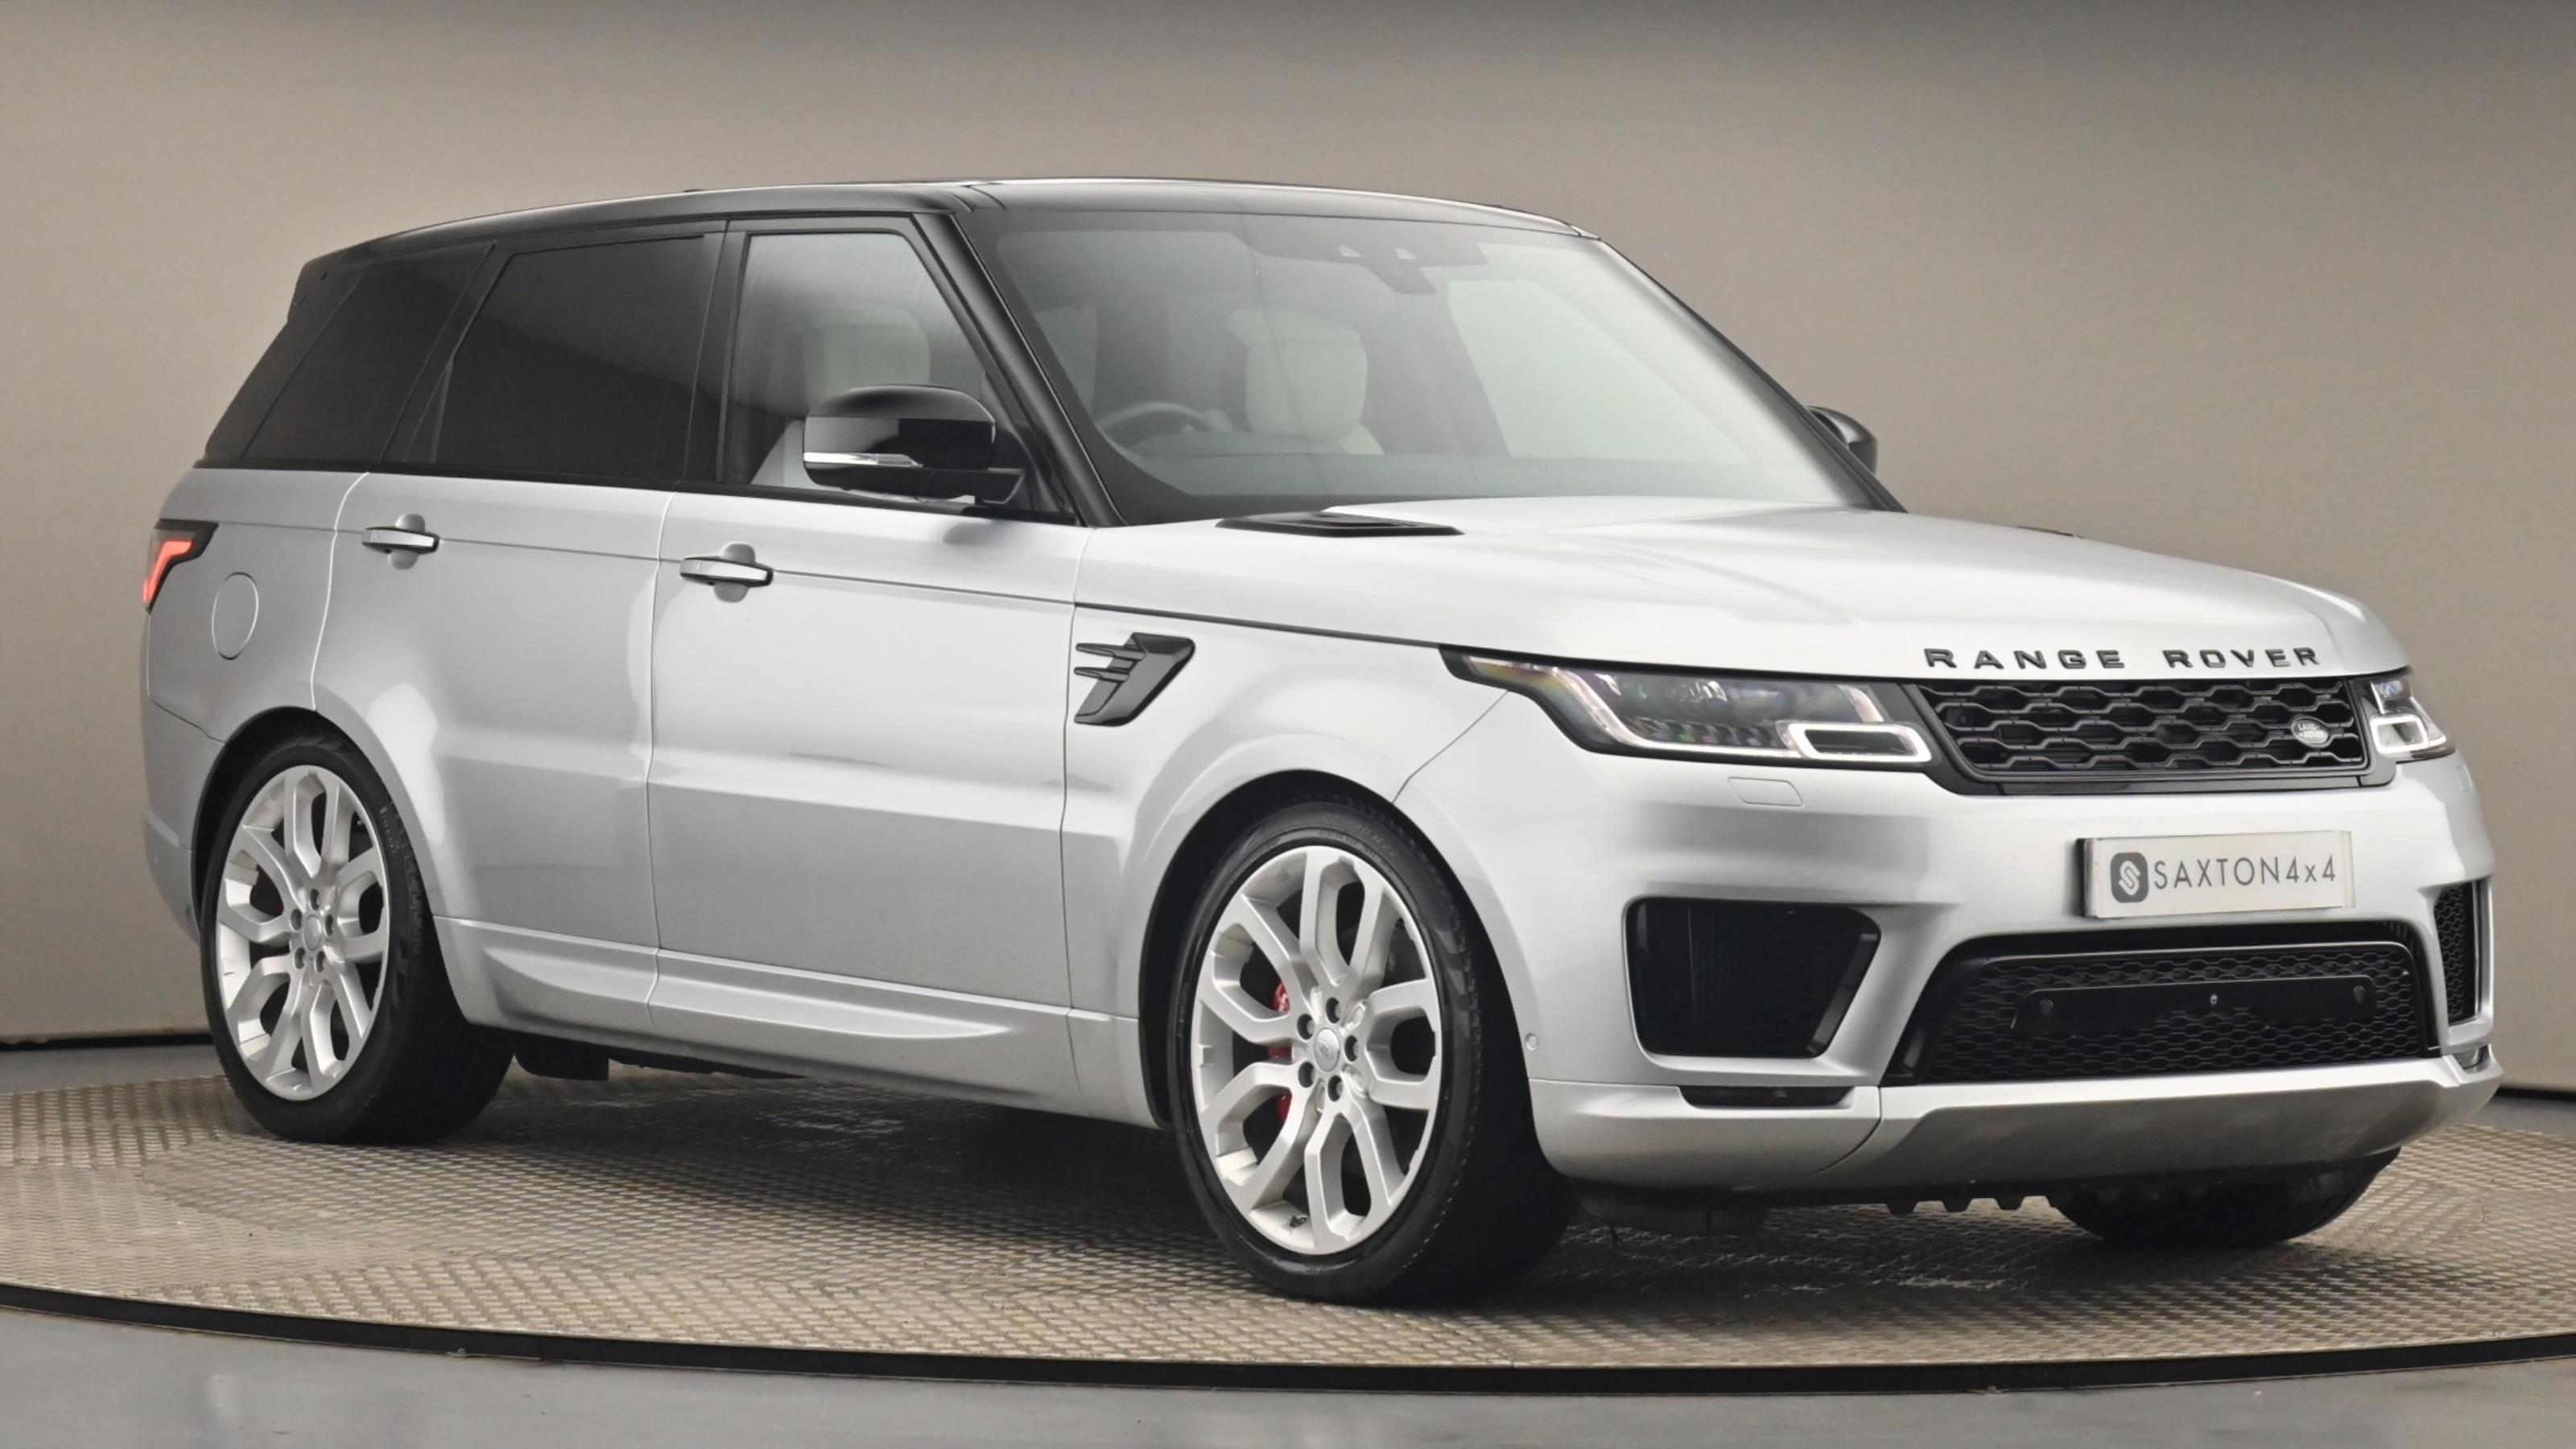 Used 2018 Land Rover RANGE ROVER SPORT 4.4 SDV8 Autobiography Dynamic 5dr Auto SILVER at Saxton4x4